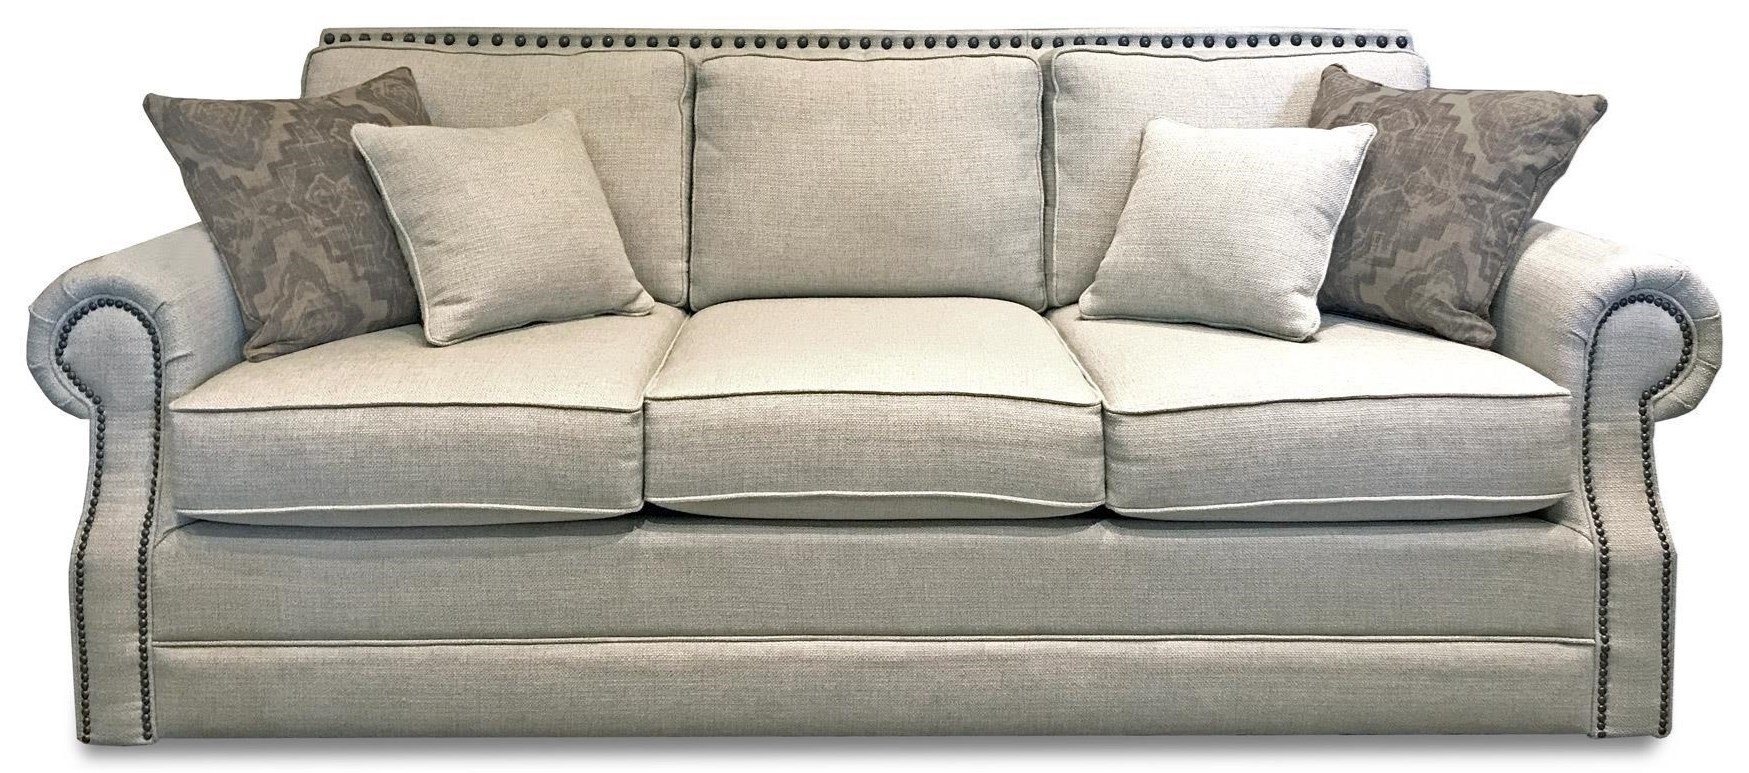 Bassett Hubbard Sofa Sleeper - Item Number: 3902--6QH 1474-2 5143-19 OBNAIL